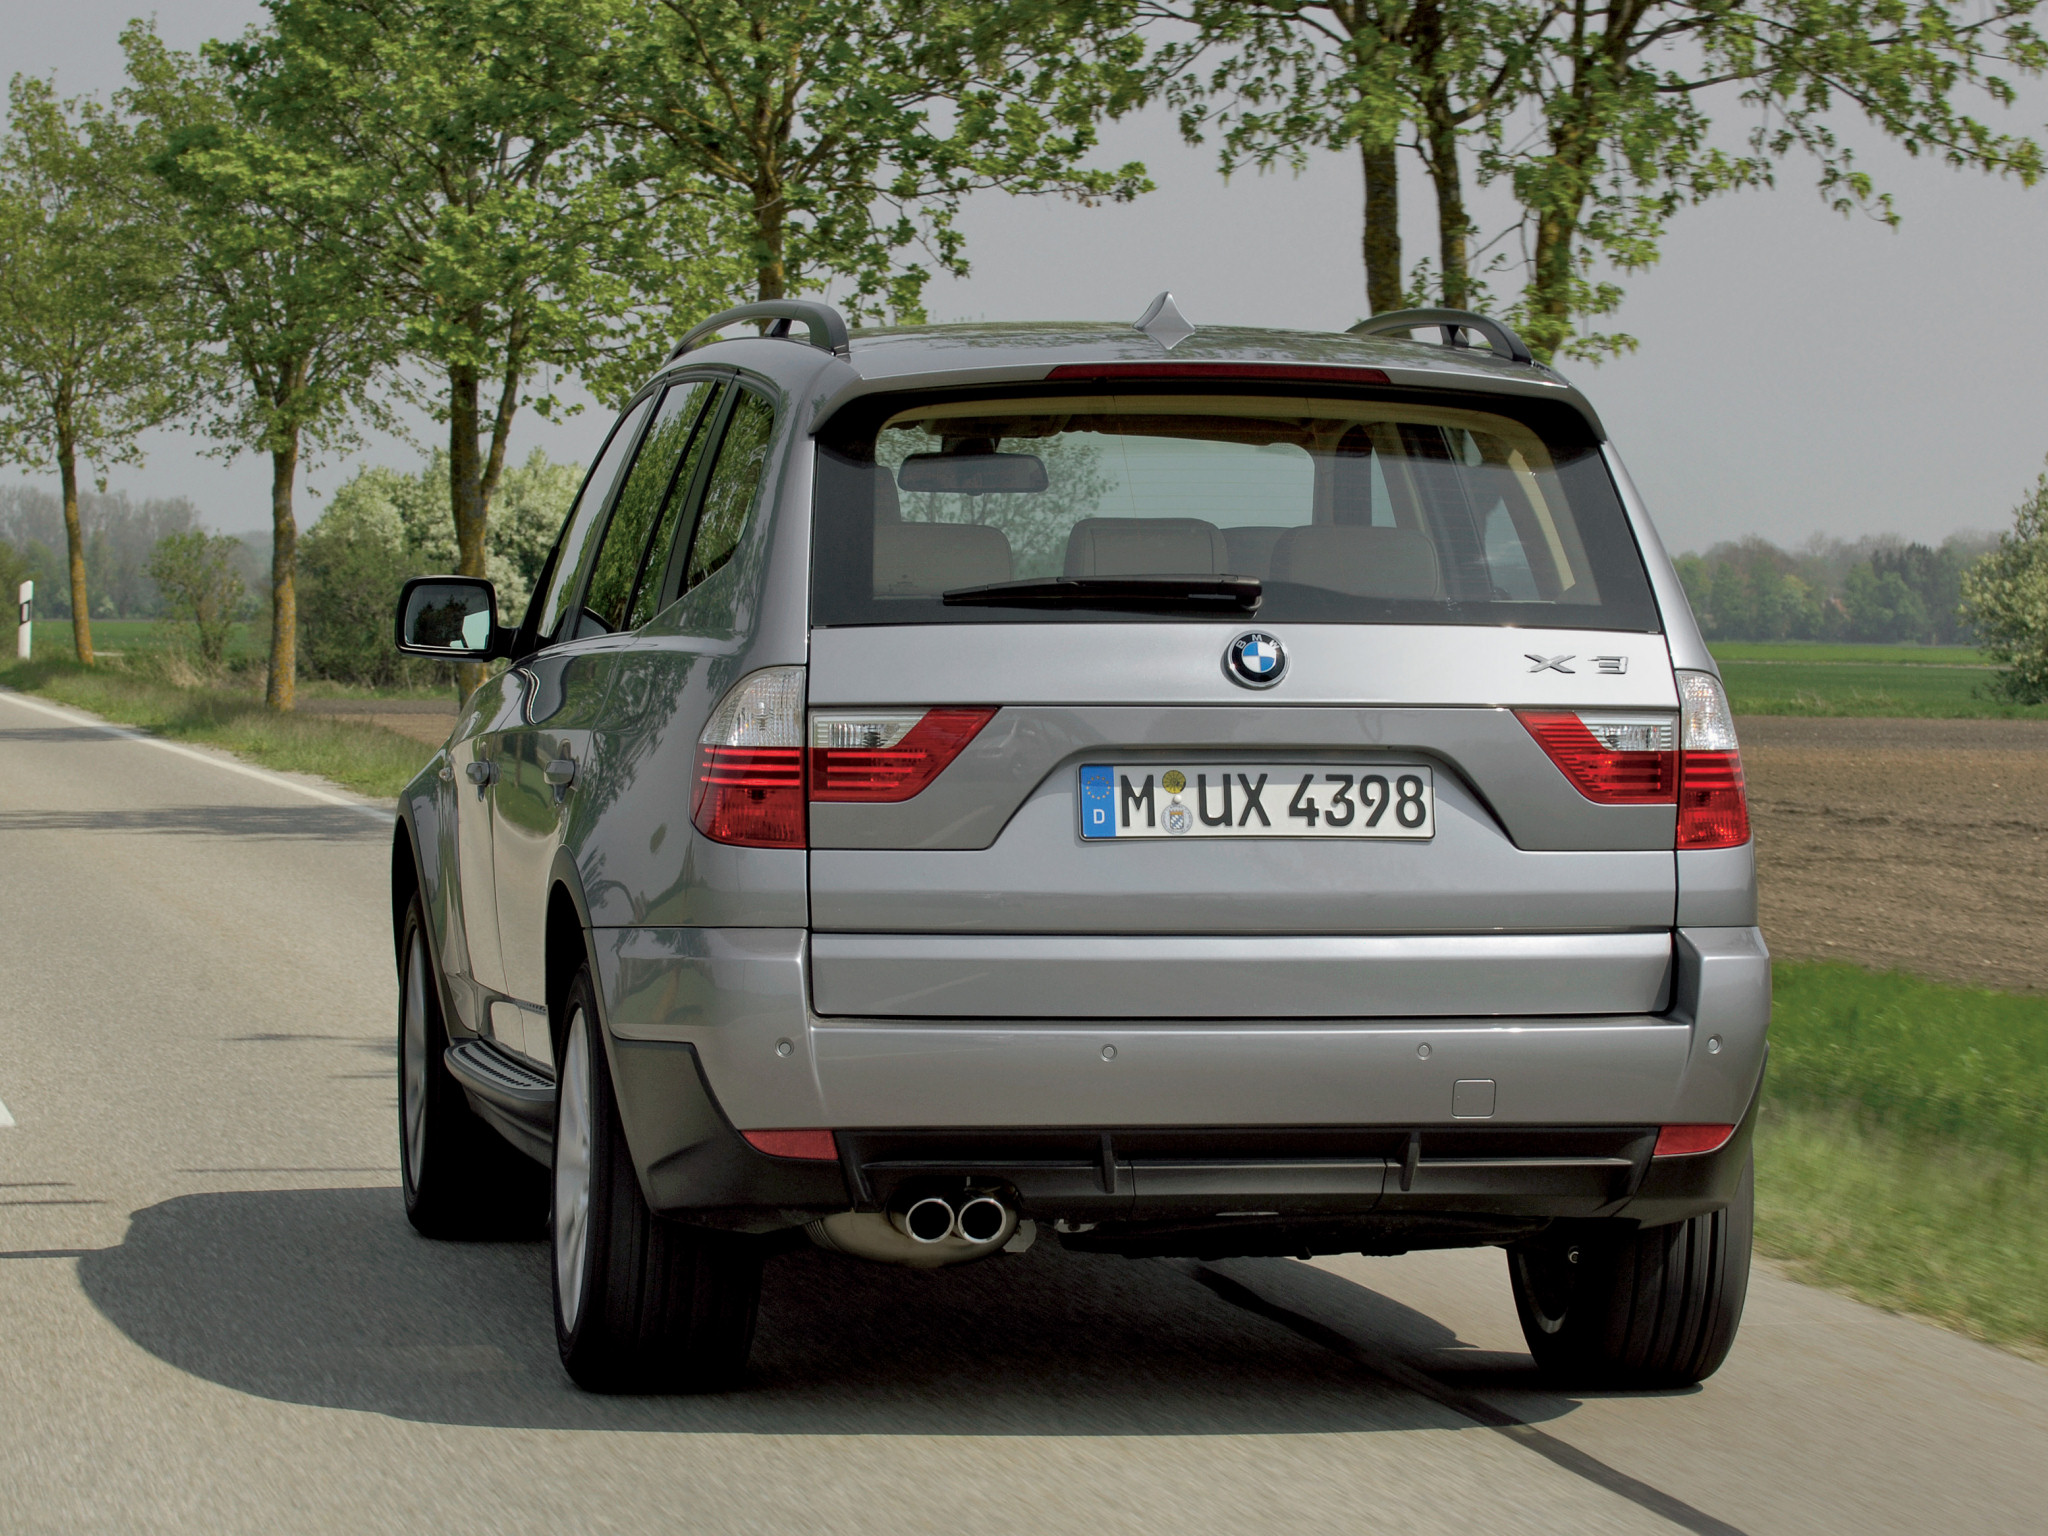 bmw x3 facelift 2006 bmw x3 facelift 2006 photo 07 car in pictures car photo gallery. Black Bedroom Furniture Sets. Home Design Ideas